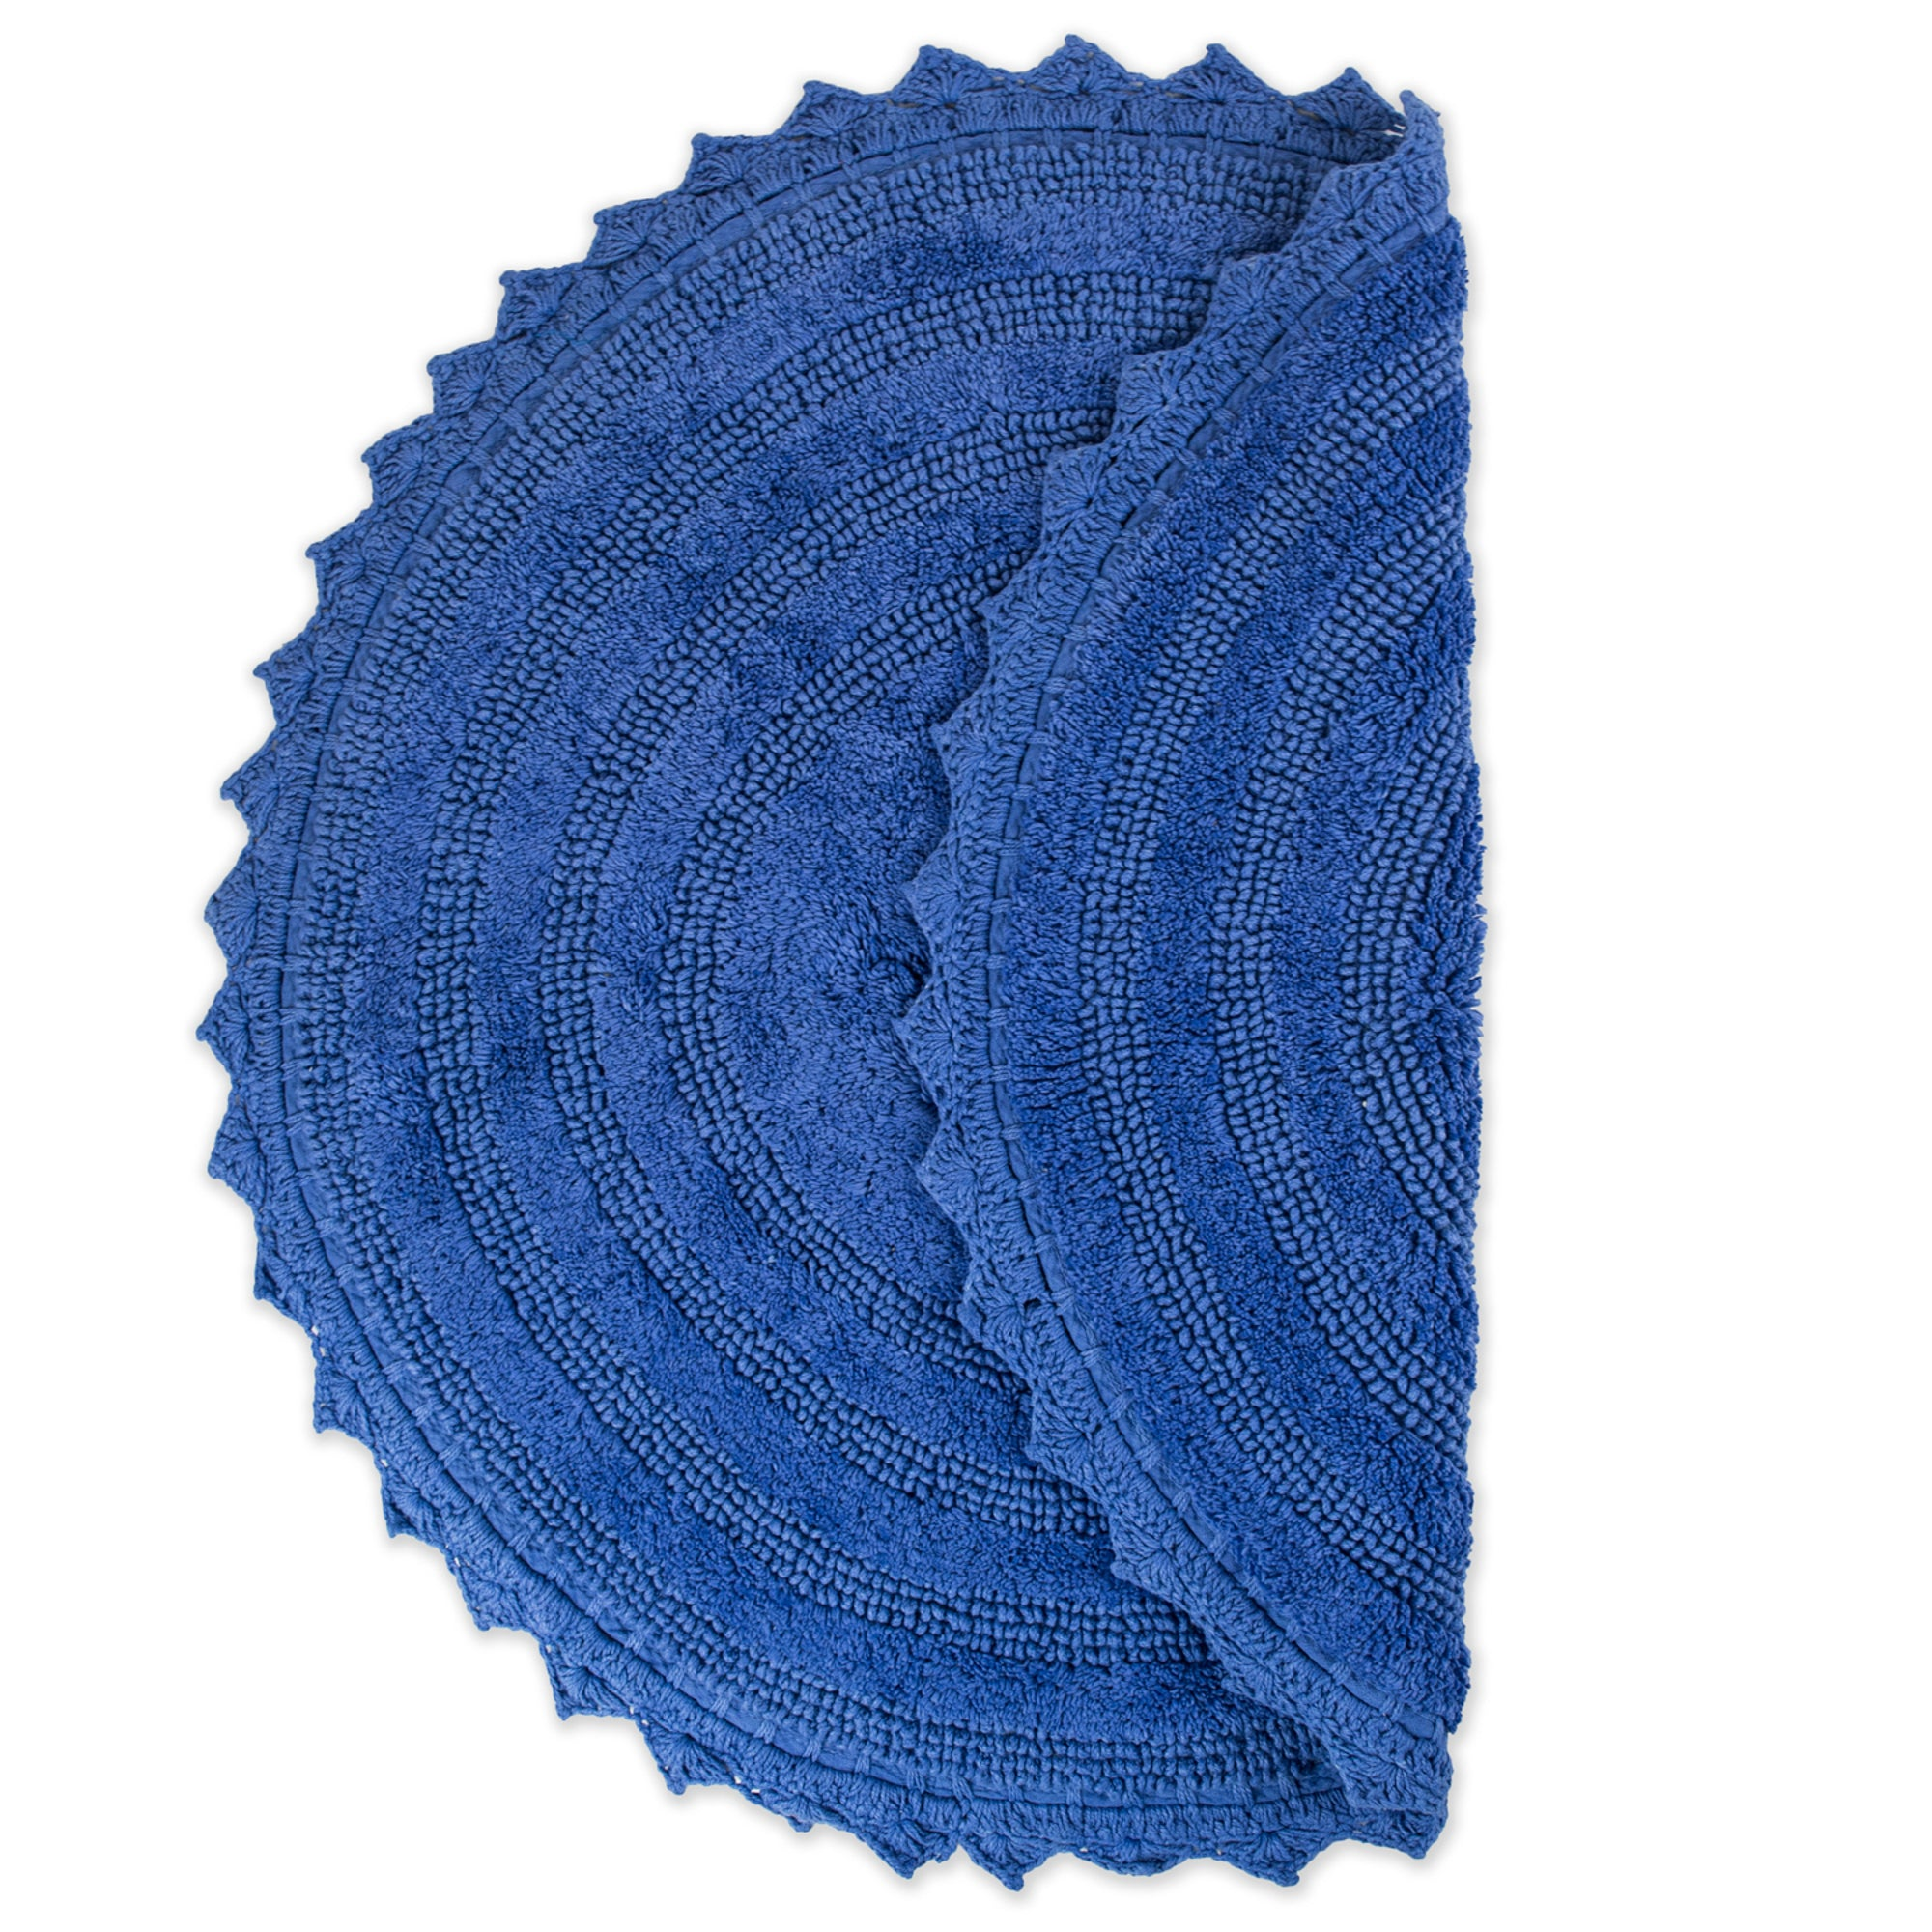 Dii Blueberry Round Crochet Bath Mat Dii Home Store